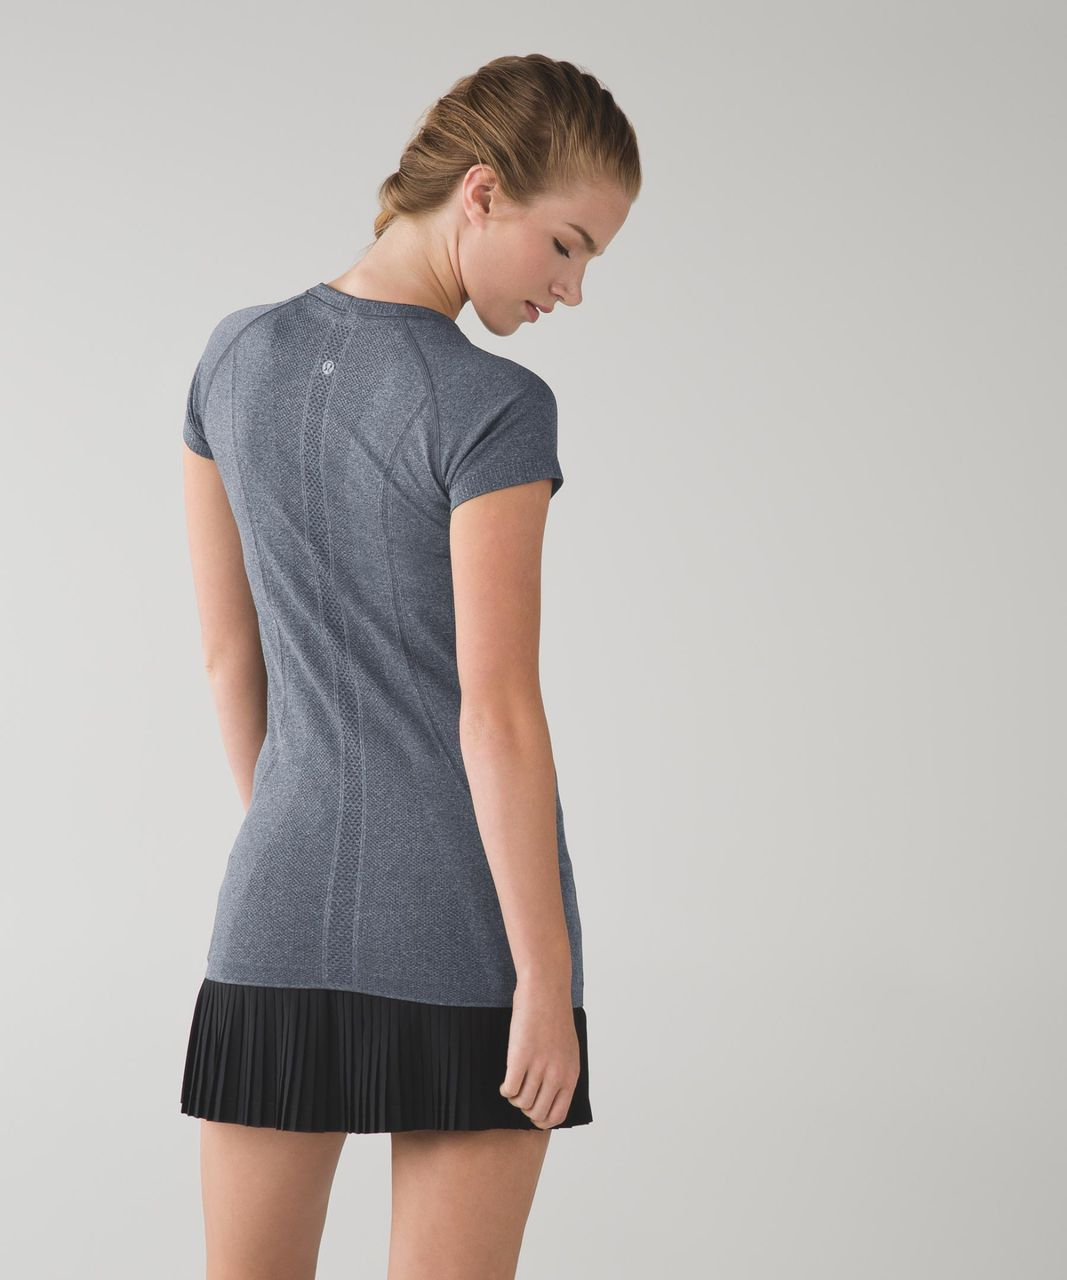 Lululemon Swiftly Tech Short Sleeve - Heathered Black